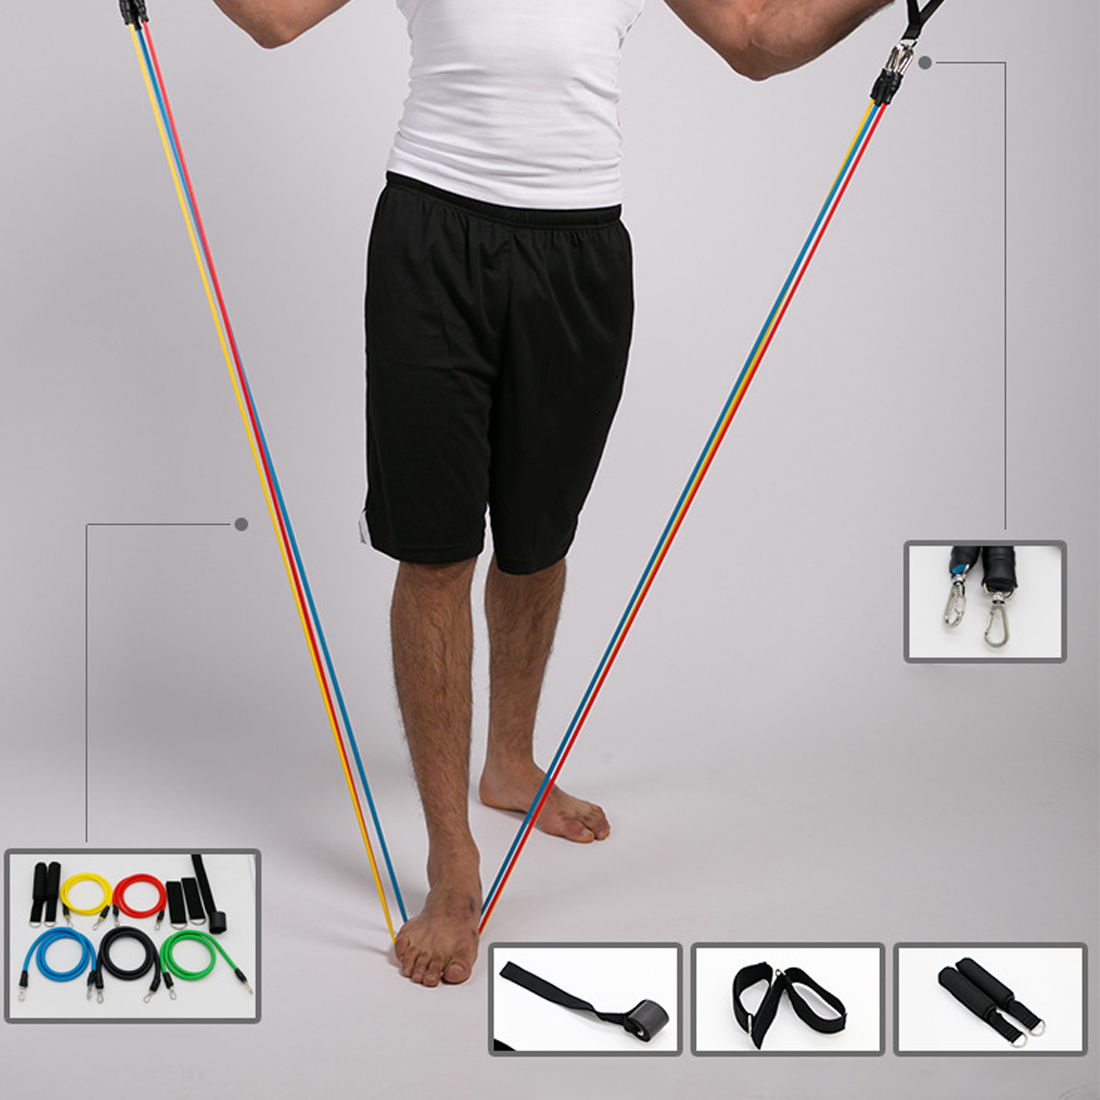 Bands Workout Exercise Pilates Yoga New 11 Pcs/Set Latex Resistance Crossfit Fitness Tubes Pull Rope